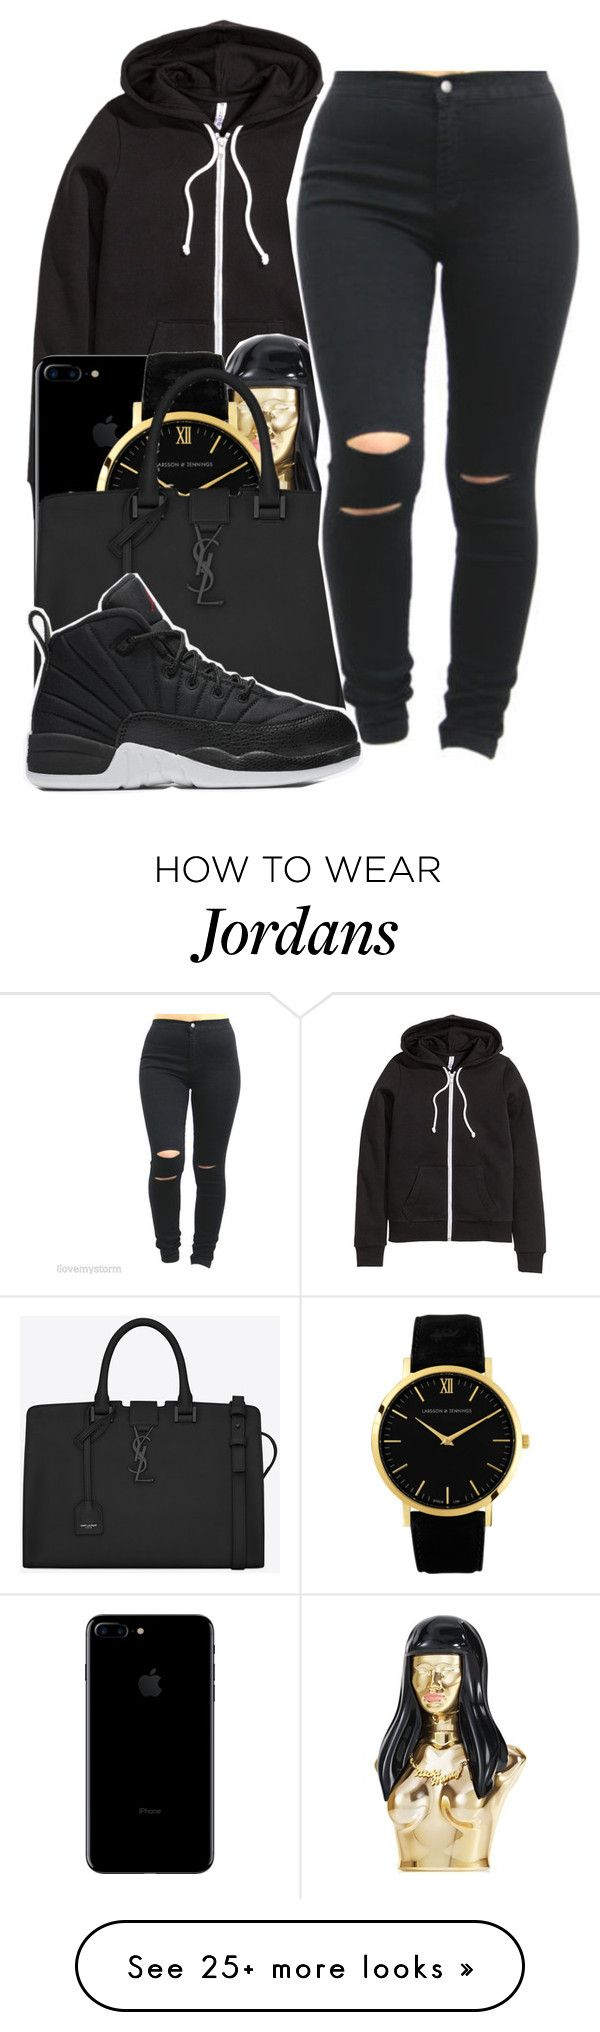 """Tell the doctor imma healthy kid i smoke broccoli"" by maiyaxbabyyy on Polyvore featuring H&M, Nicki Minaj, Larsson & Jennings, Yves Saint Laurent and NIKE"